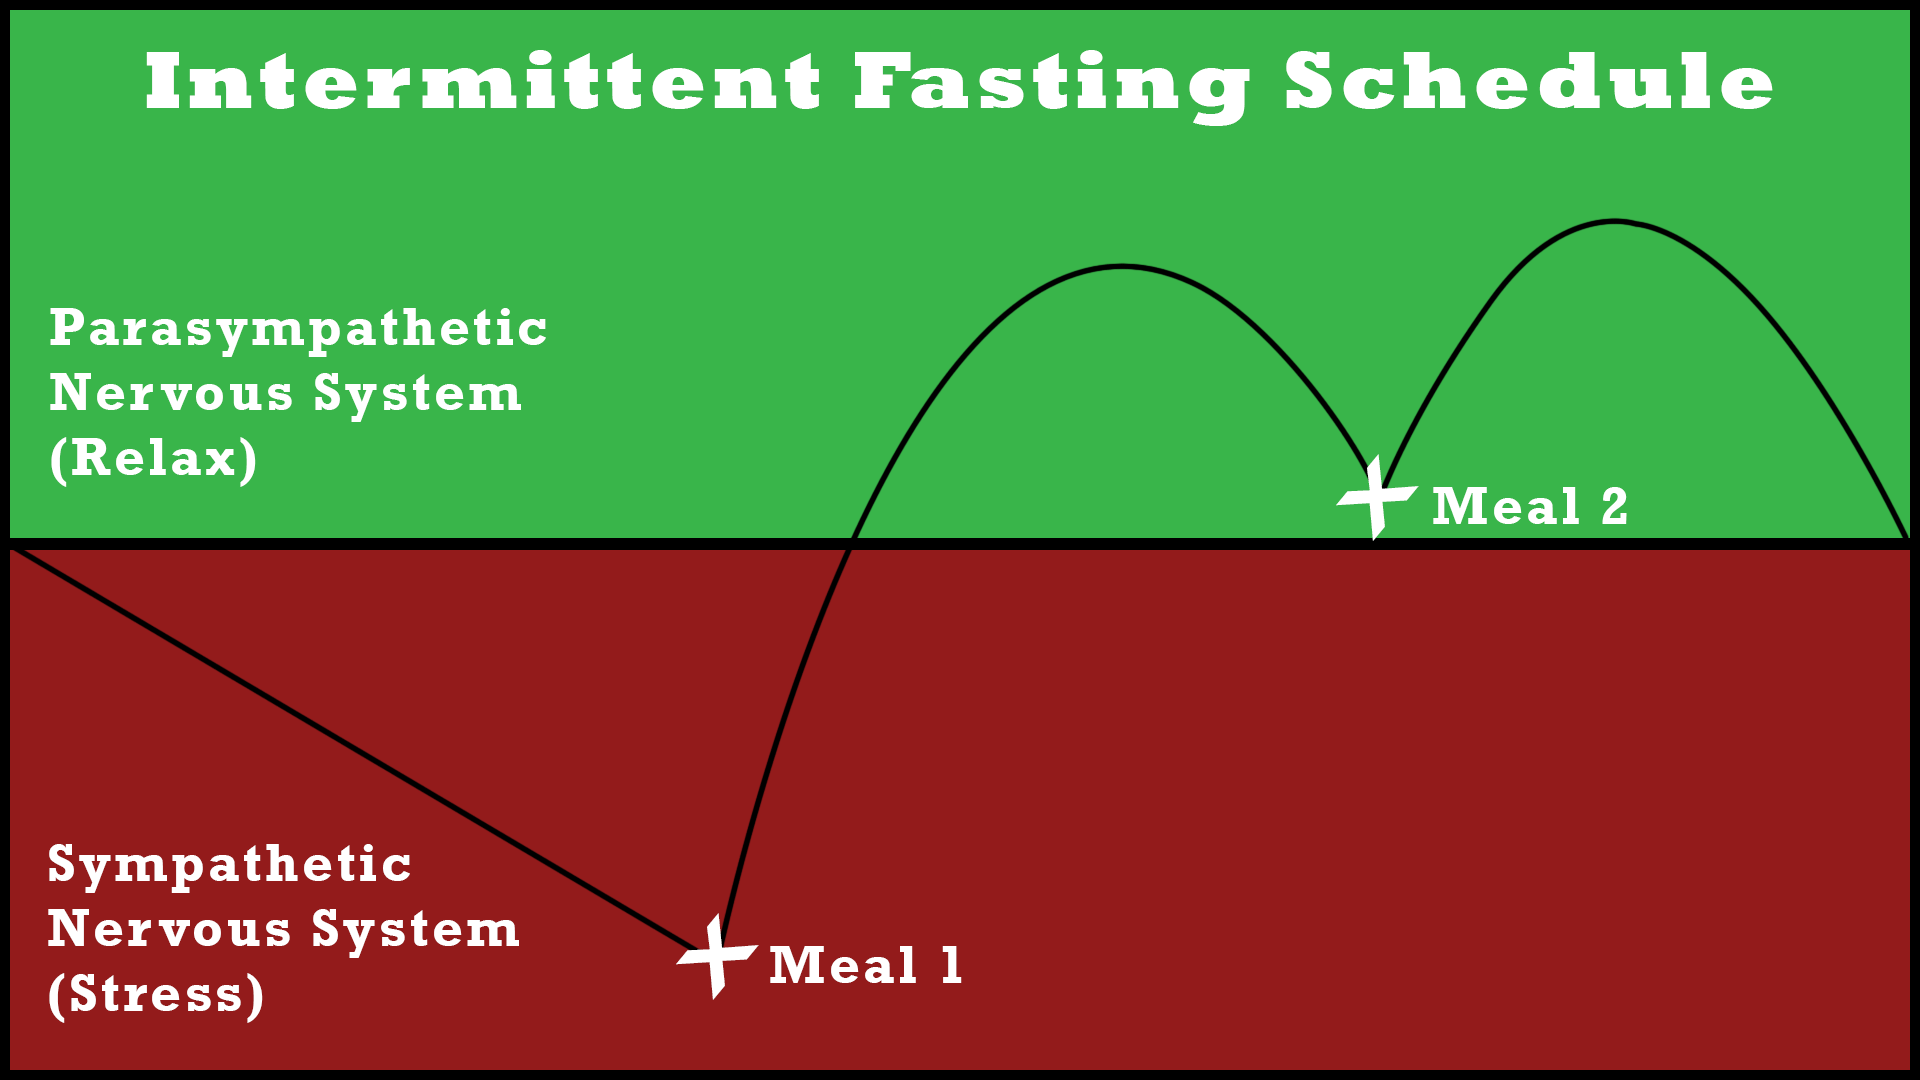 intermittent fasting schedule stress and relax